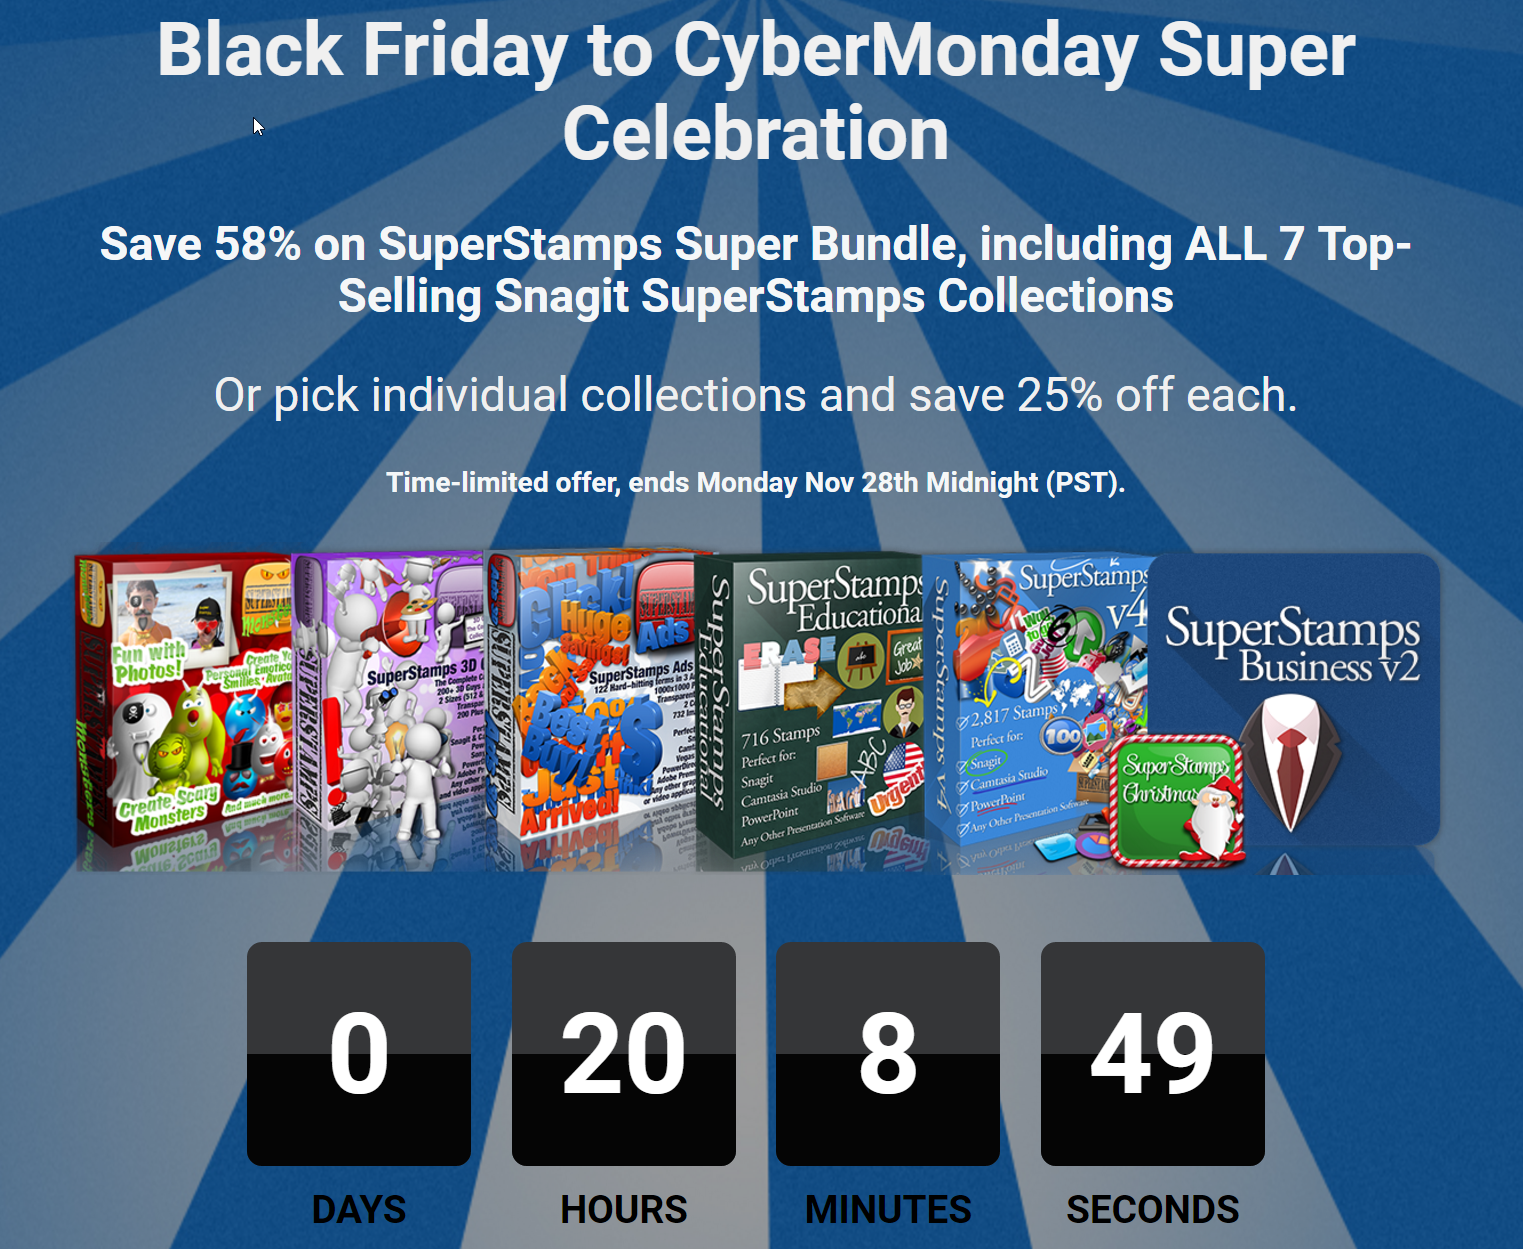 SuperStamps Super Bundle Cyber Monday Deal